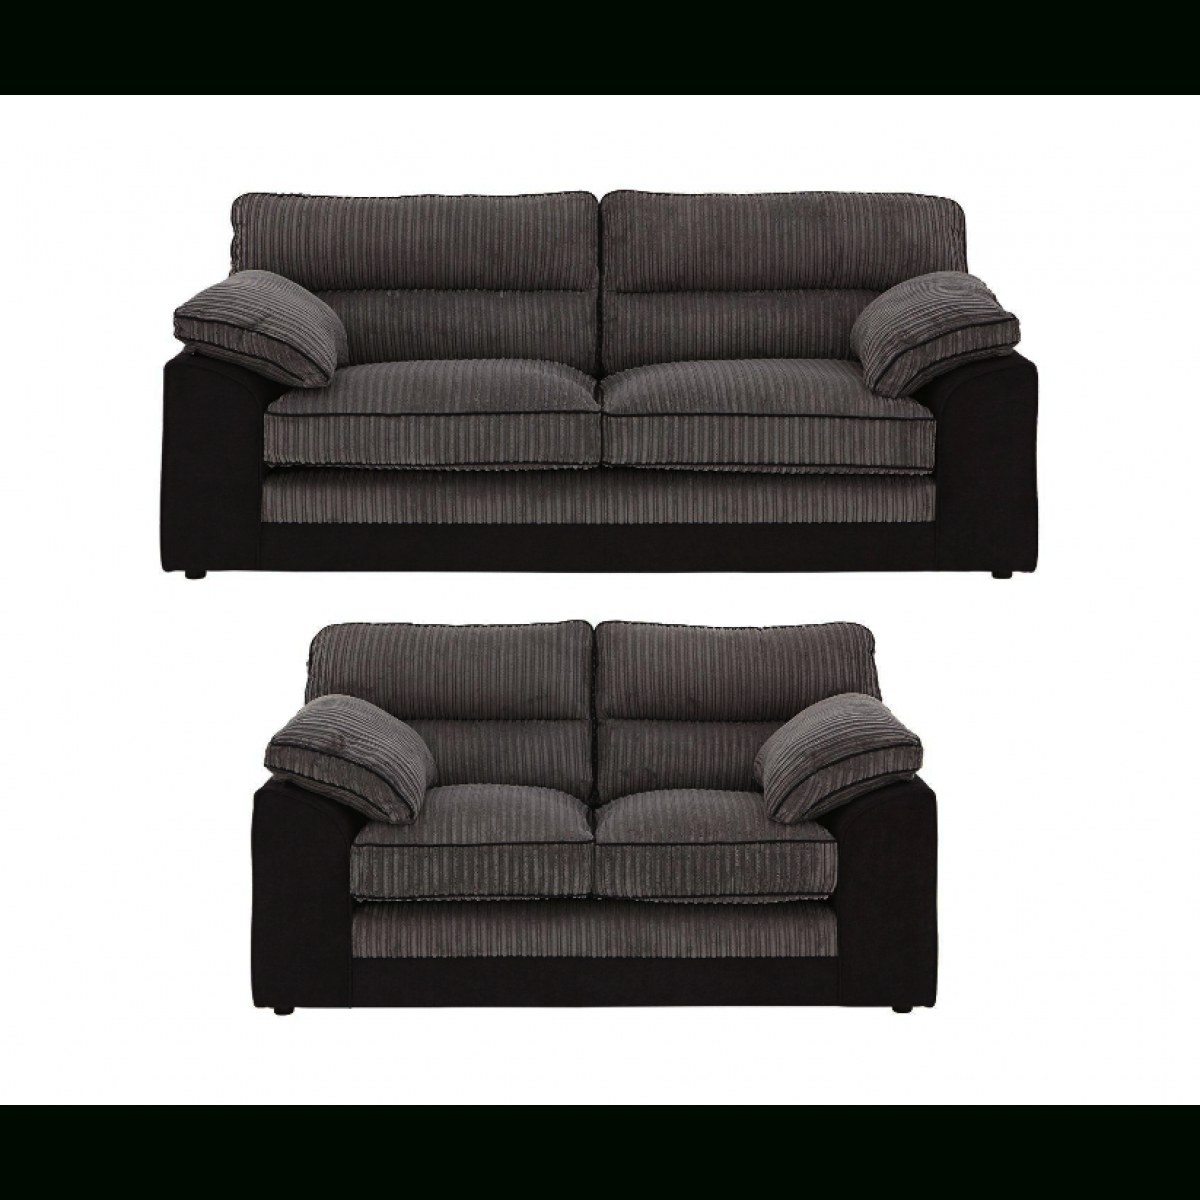 Delta 3 Seater Plus 2 Seater Sofa – Furnico Village For Black 2 Seater Sofas (View 3 of 20)